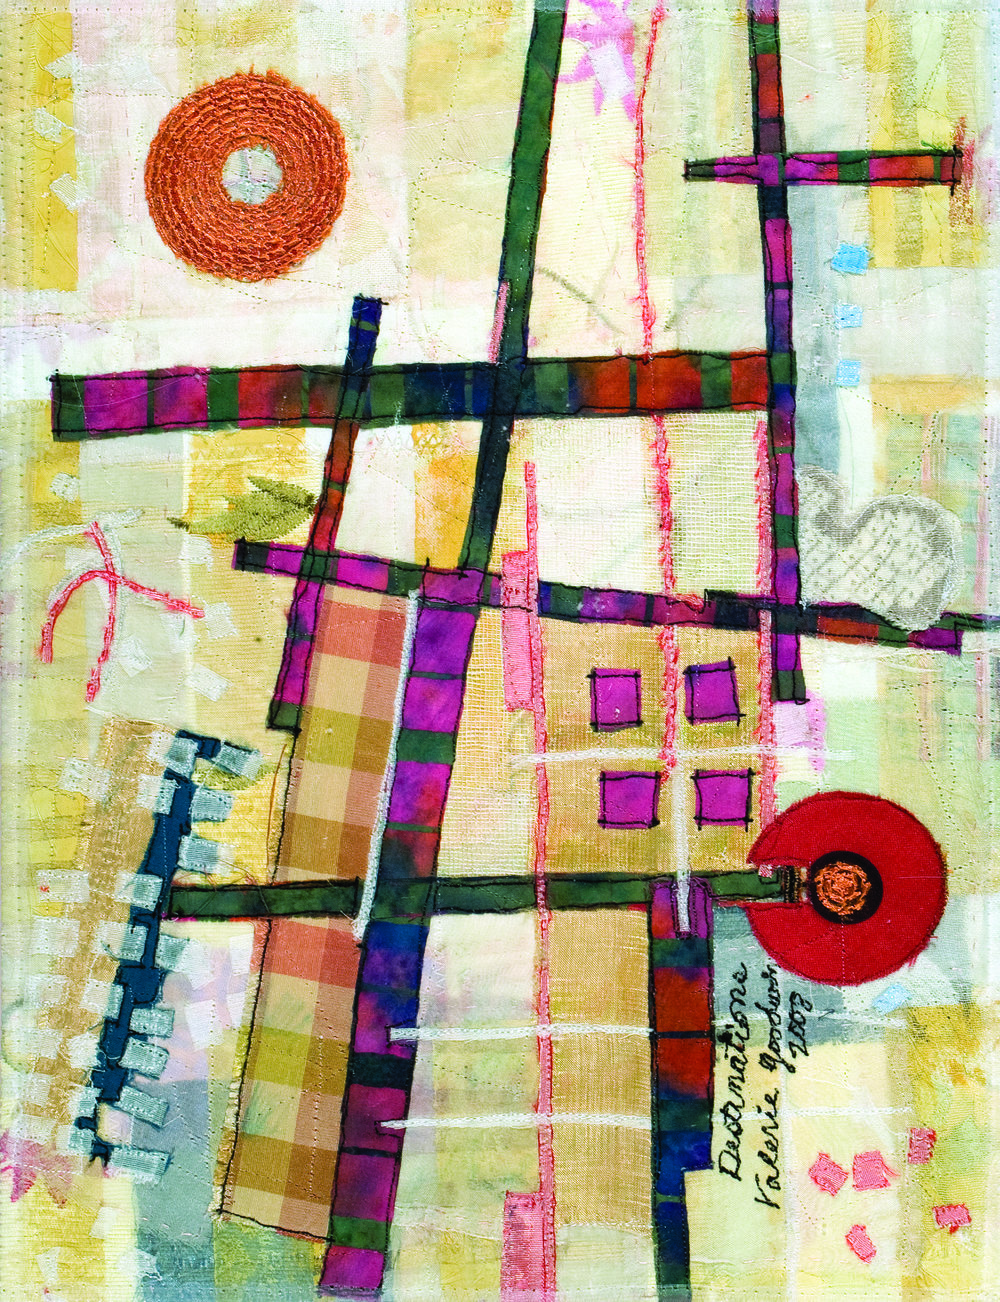 """Destinations -- 12.5"""" x 9"""" -- 2008 -- Private Collection of Mary McBride"""